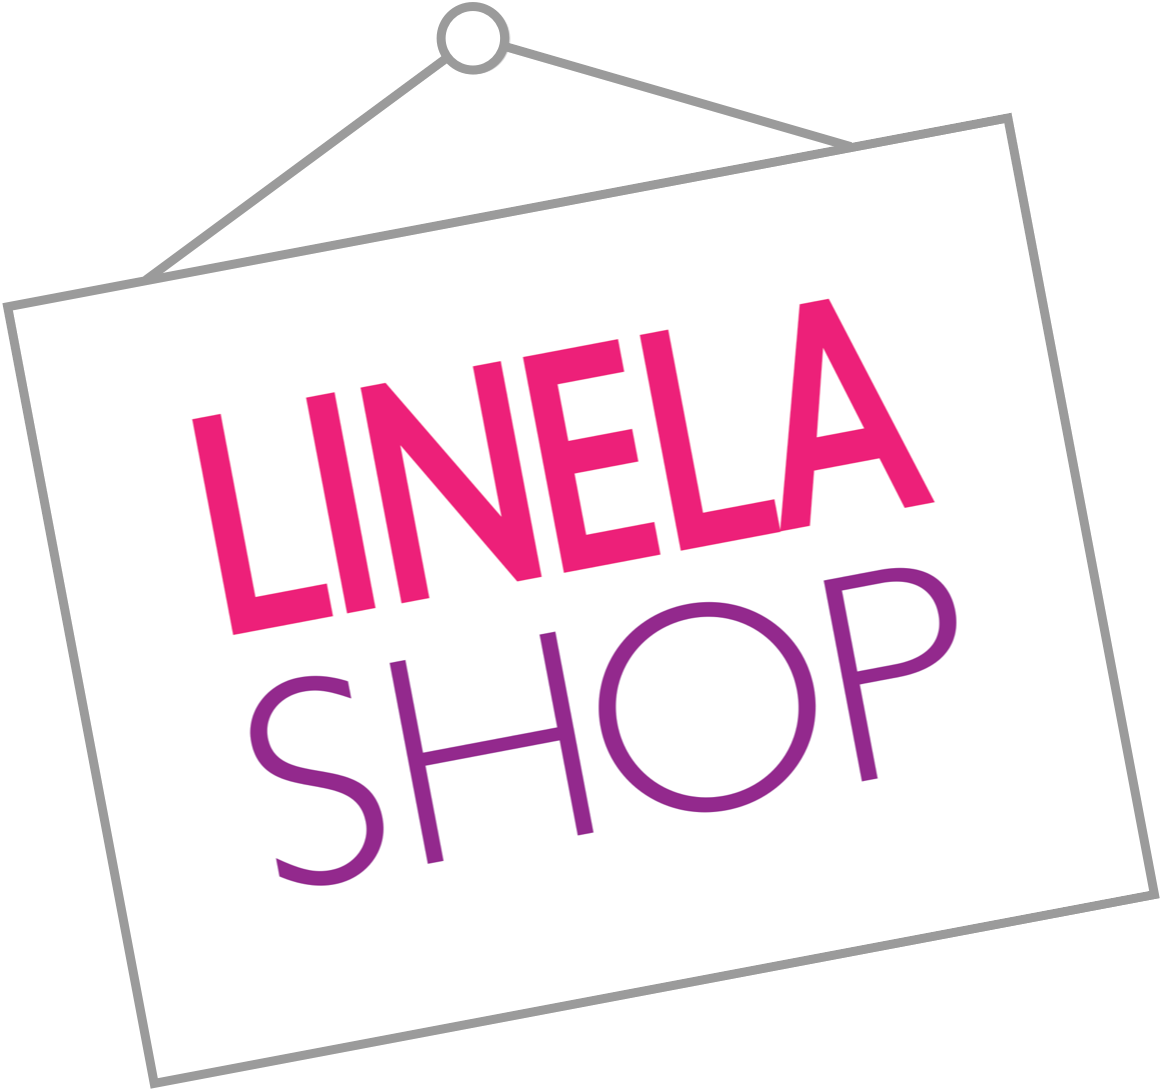 Linela shop sign 2